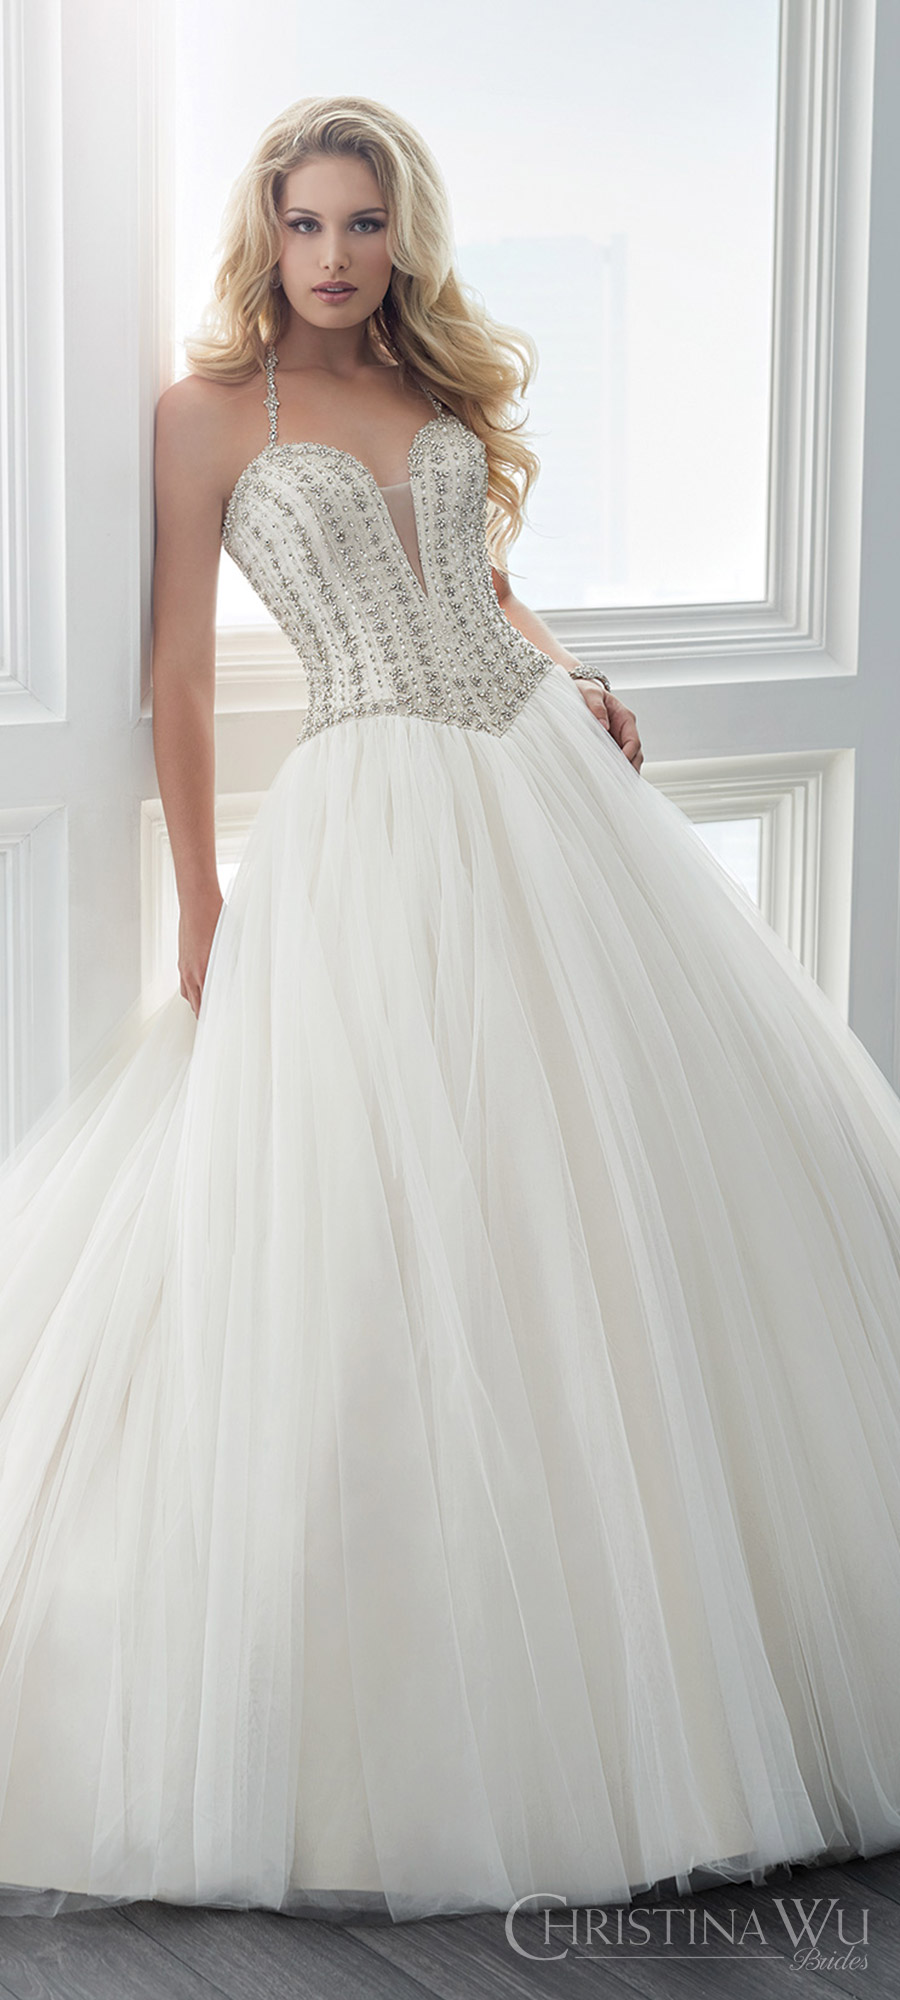 christina wu brides spring 2017 bridal sleeveless beaded straps deep sweetheart embellished bodice ball gown wedding dress (15616) zfv romantic princess